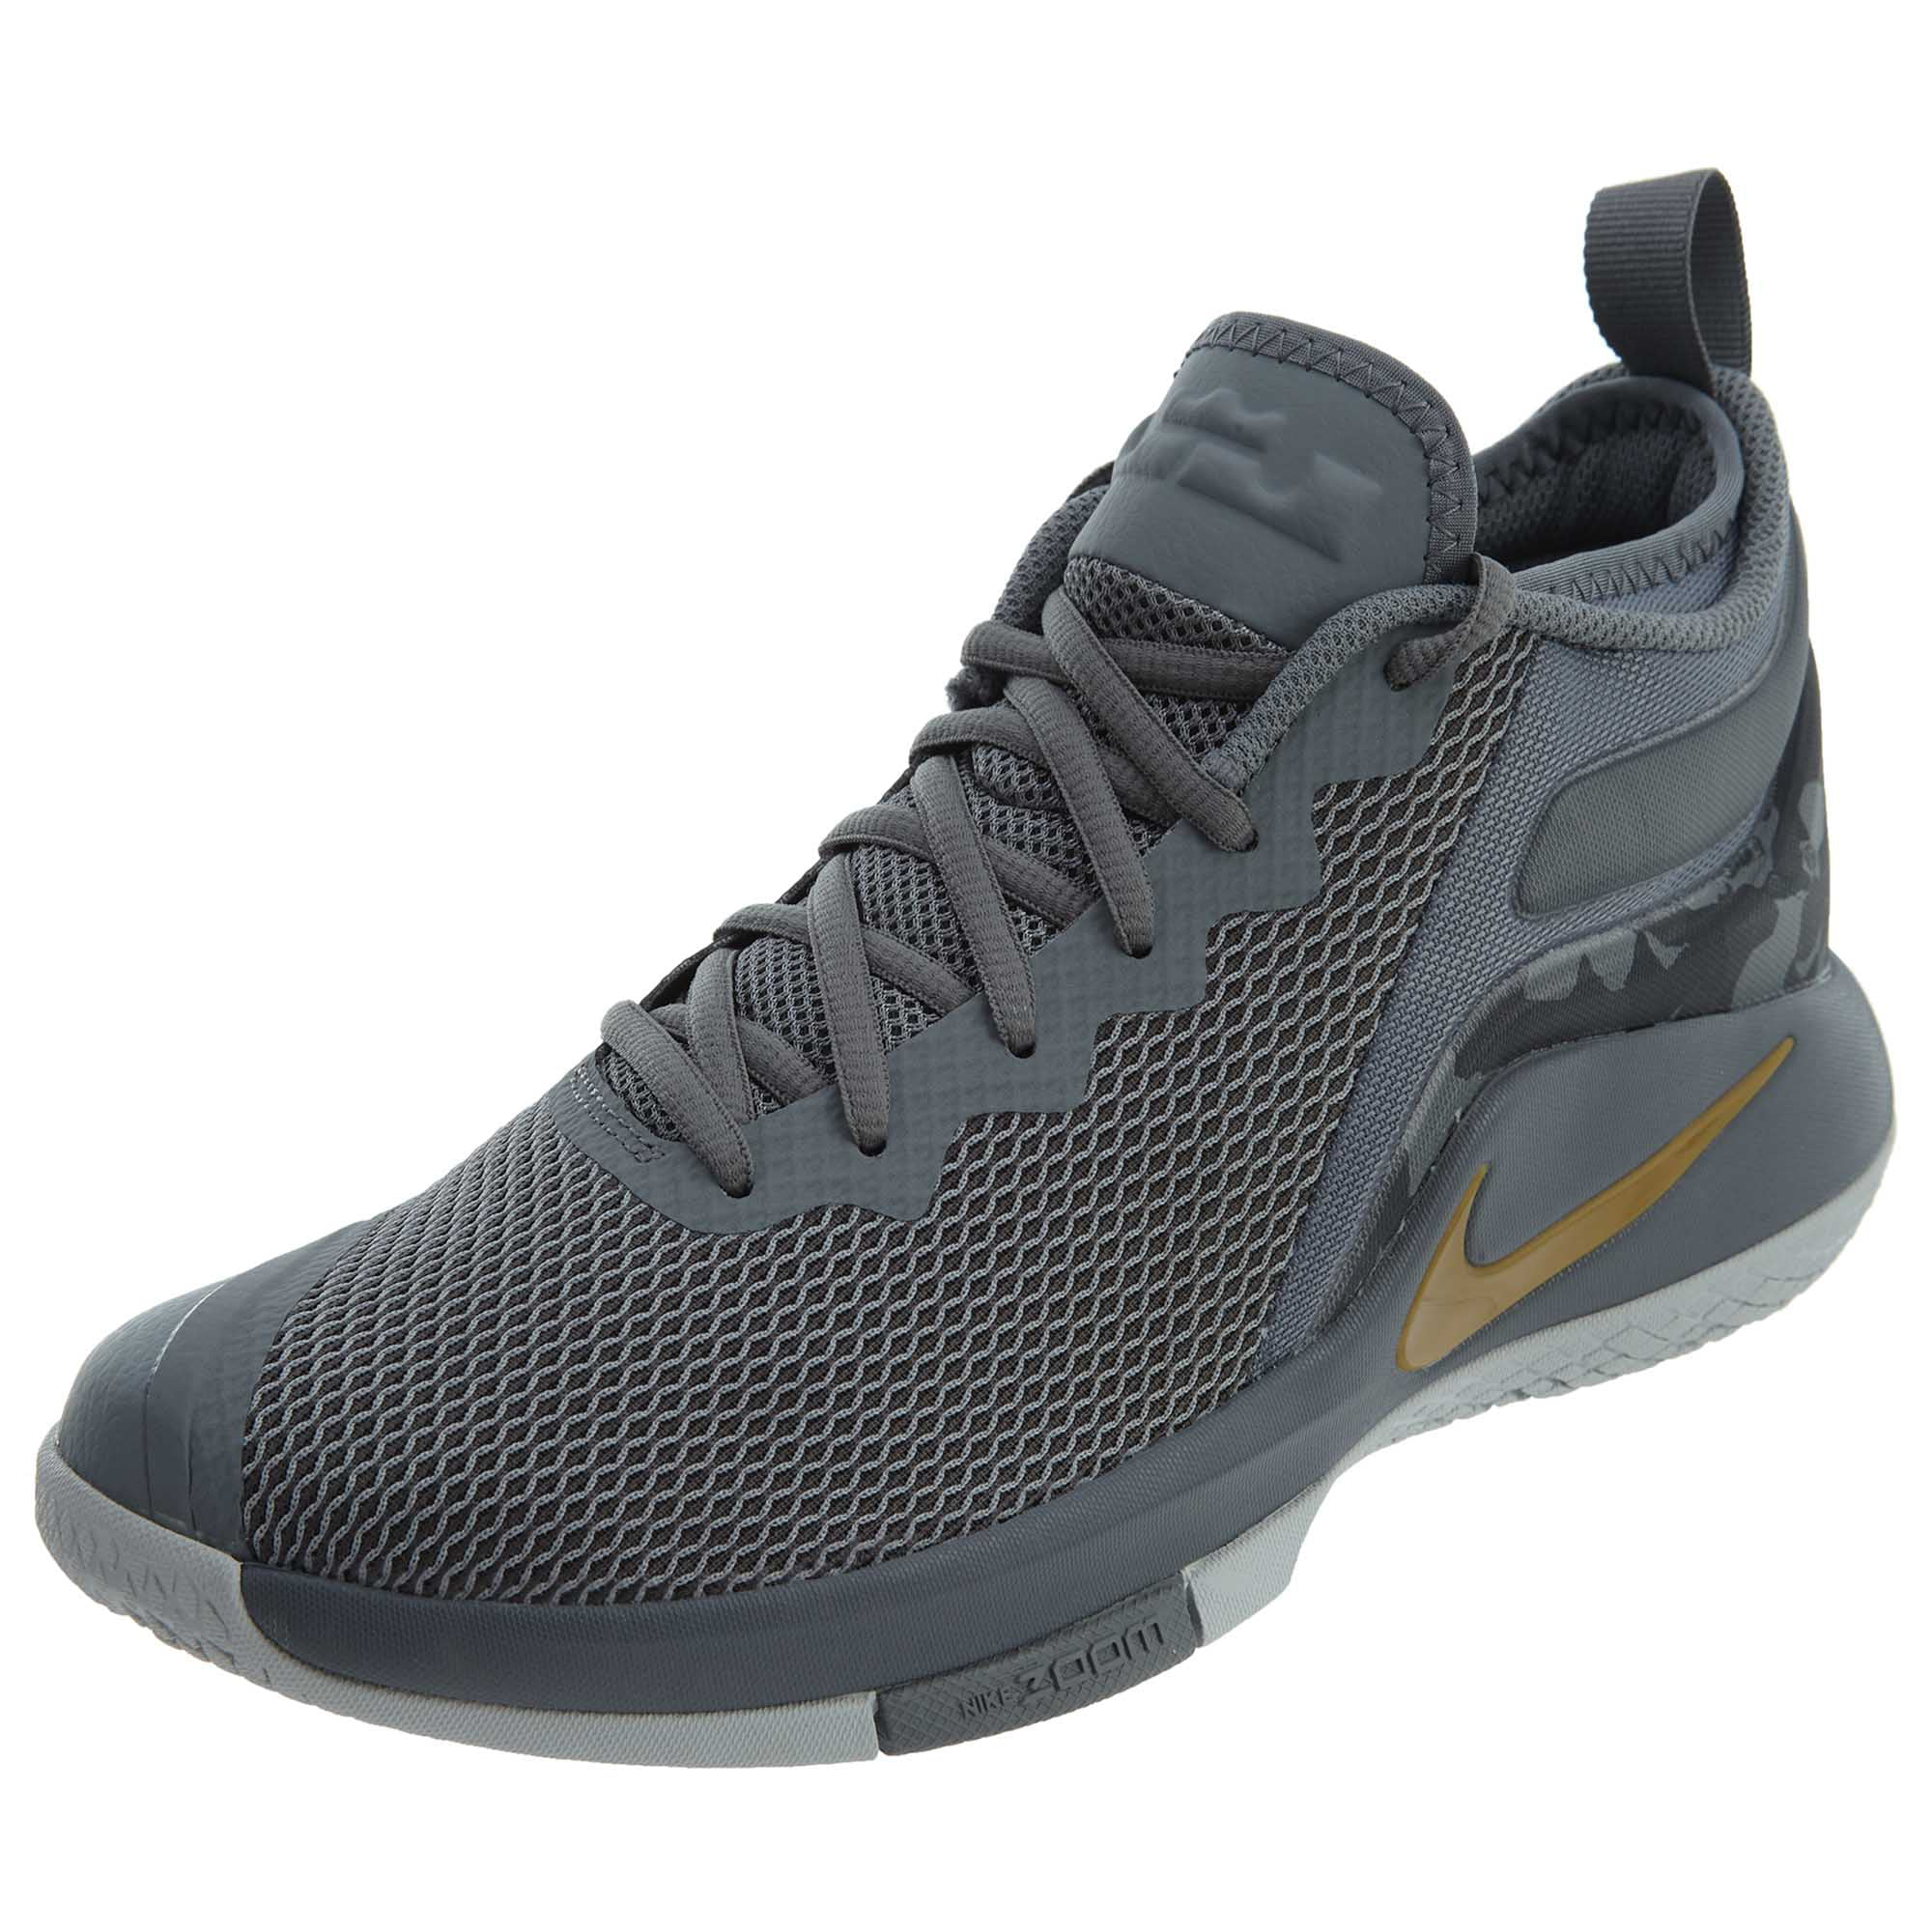 0abca62ad3a3 ... official nike lebron witness ii mens style 942518 3b212 b19c7